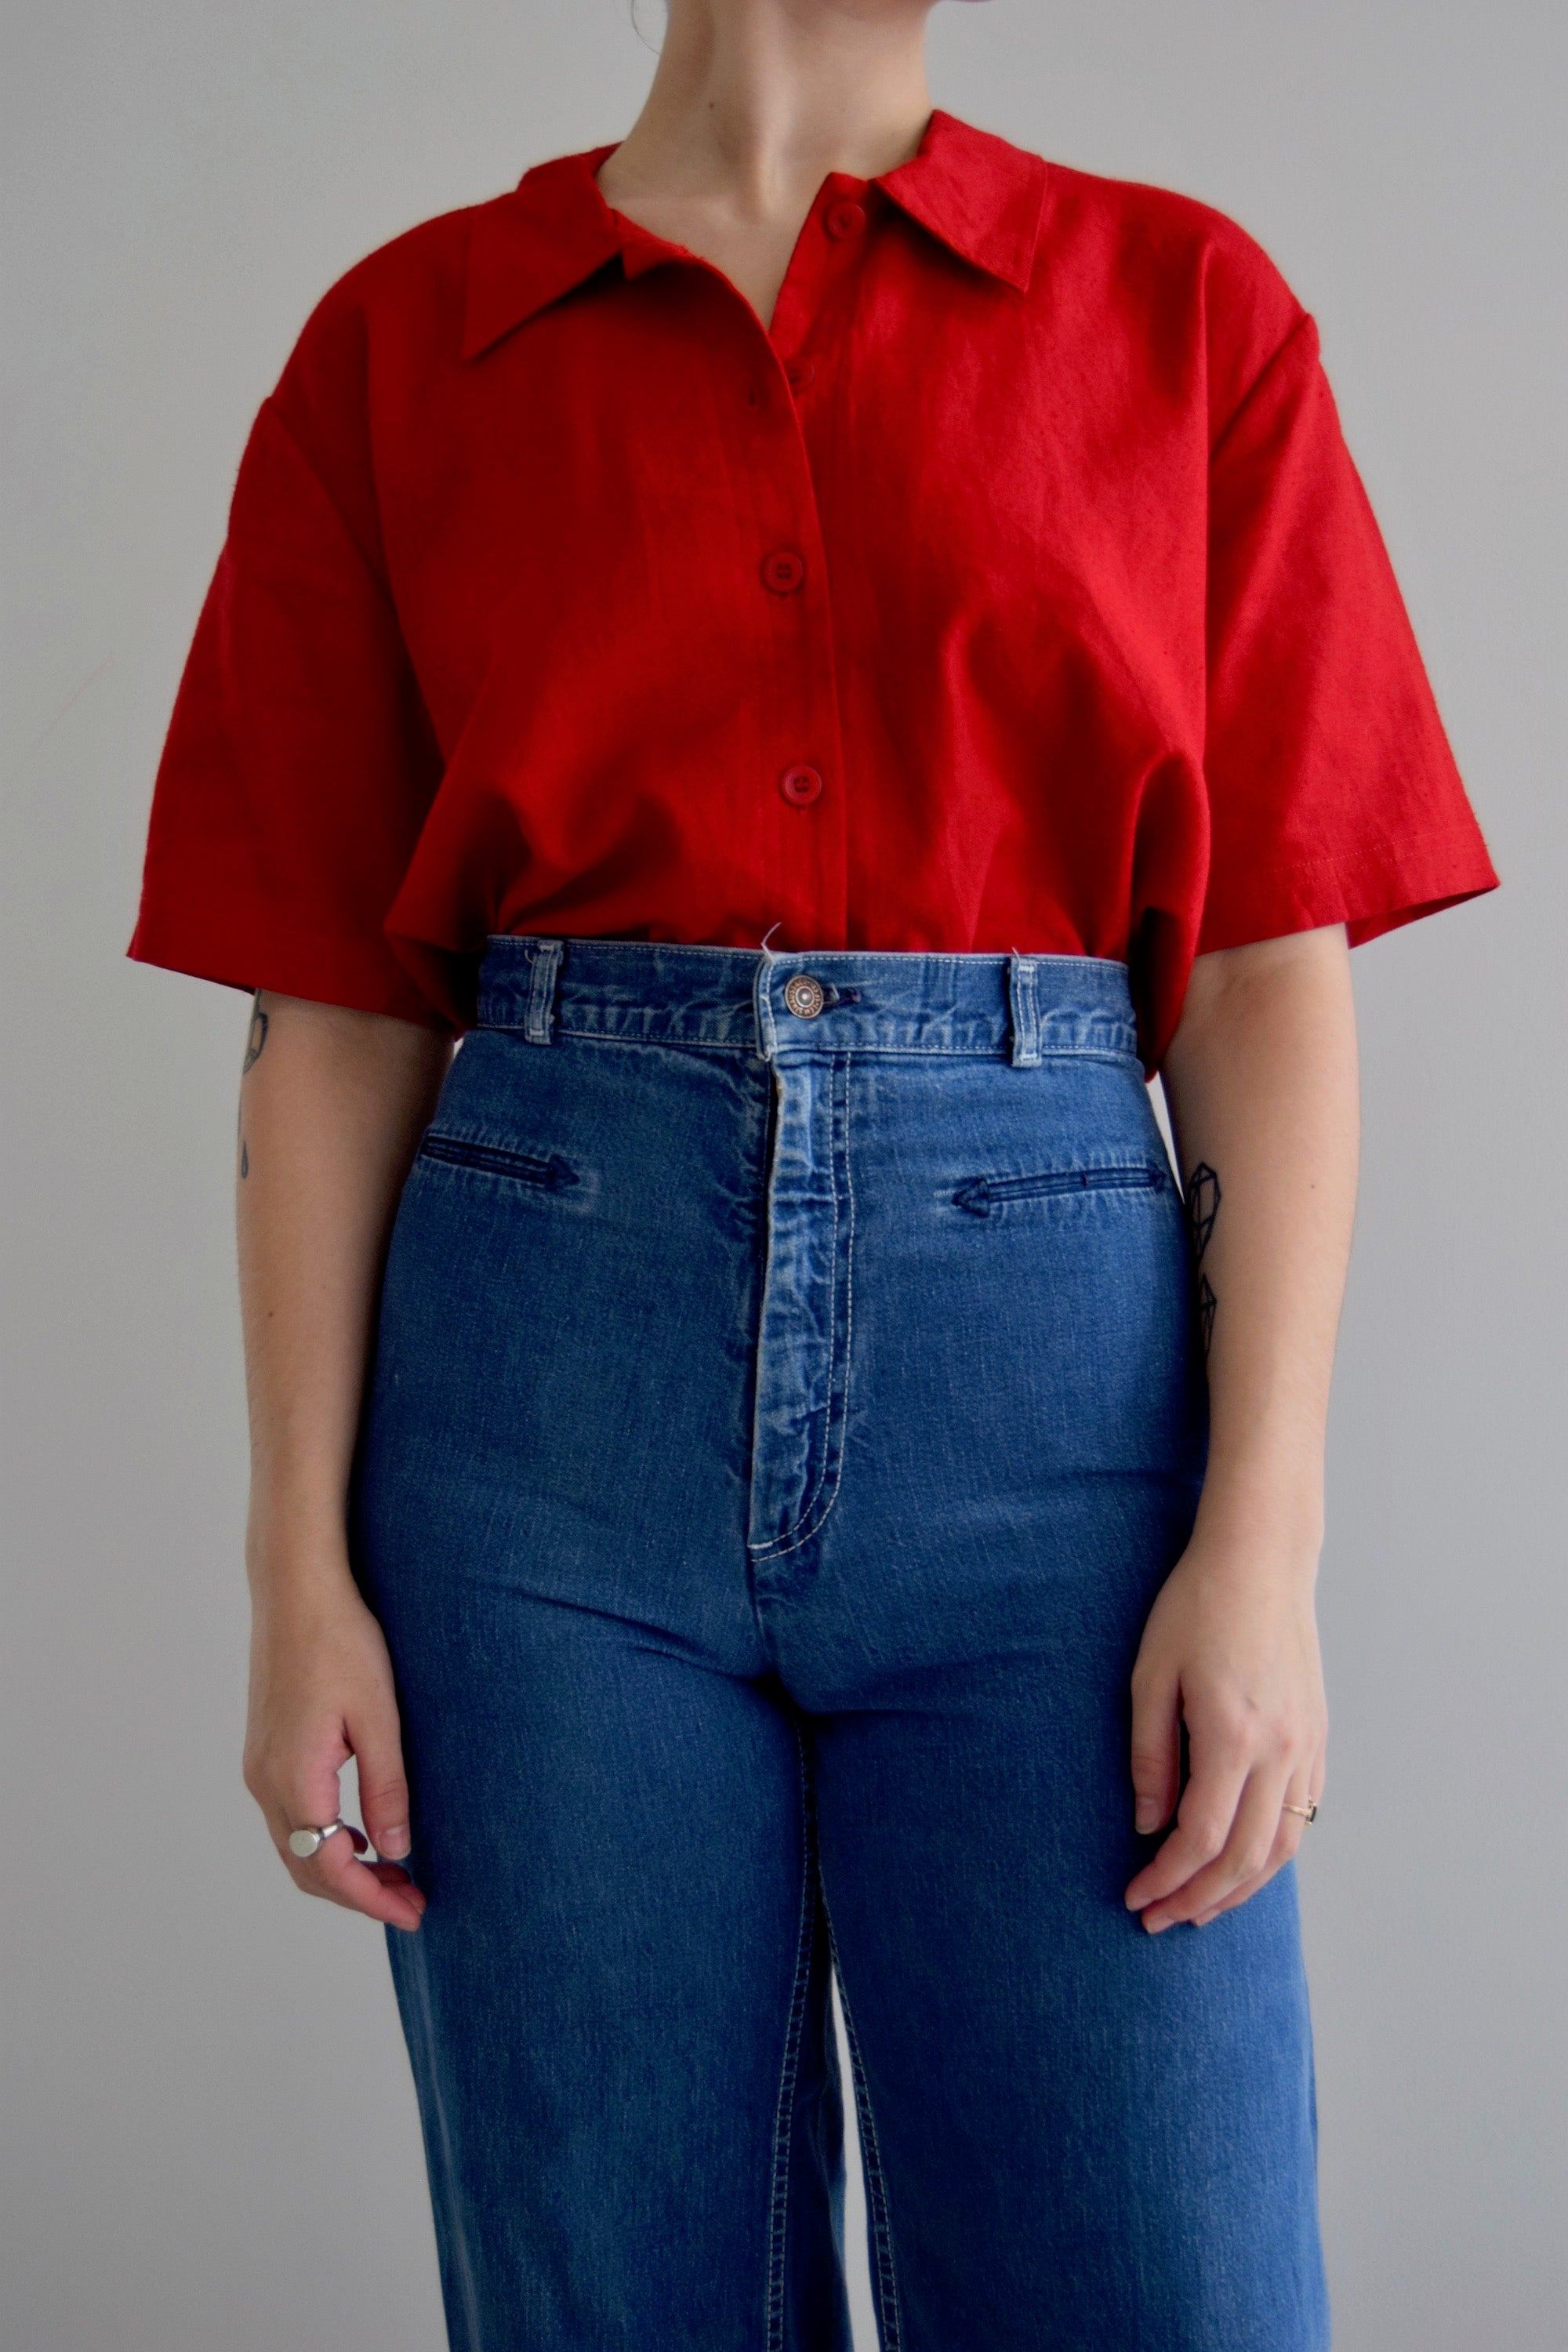 Corvette Red Linen Boxy Button Up Top FREE SHIPPING TO THE U.S.